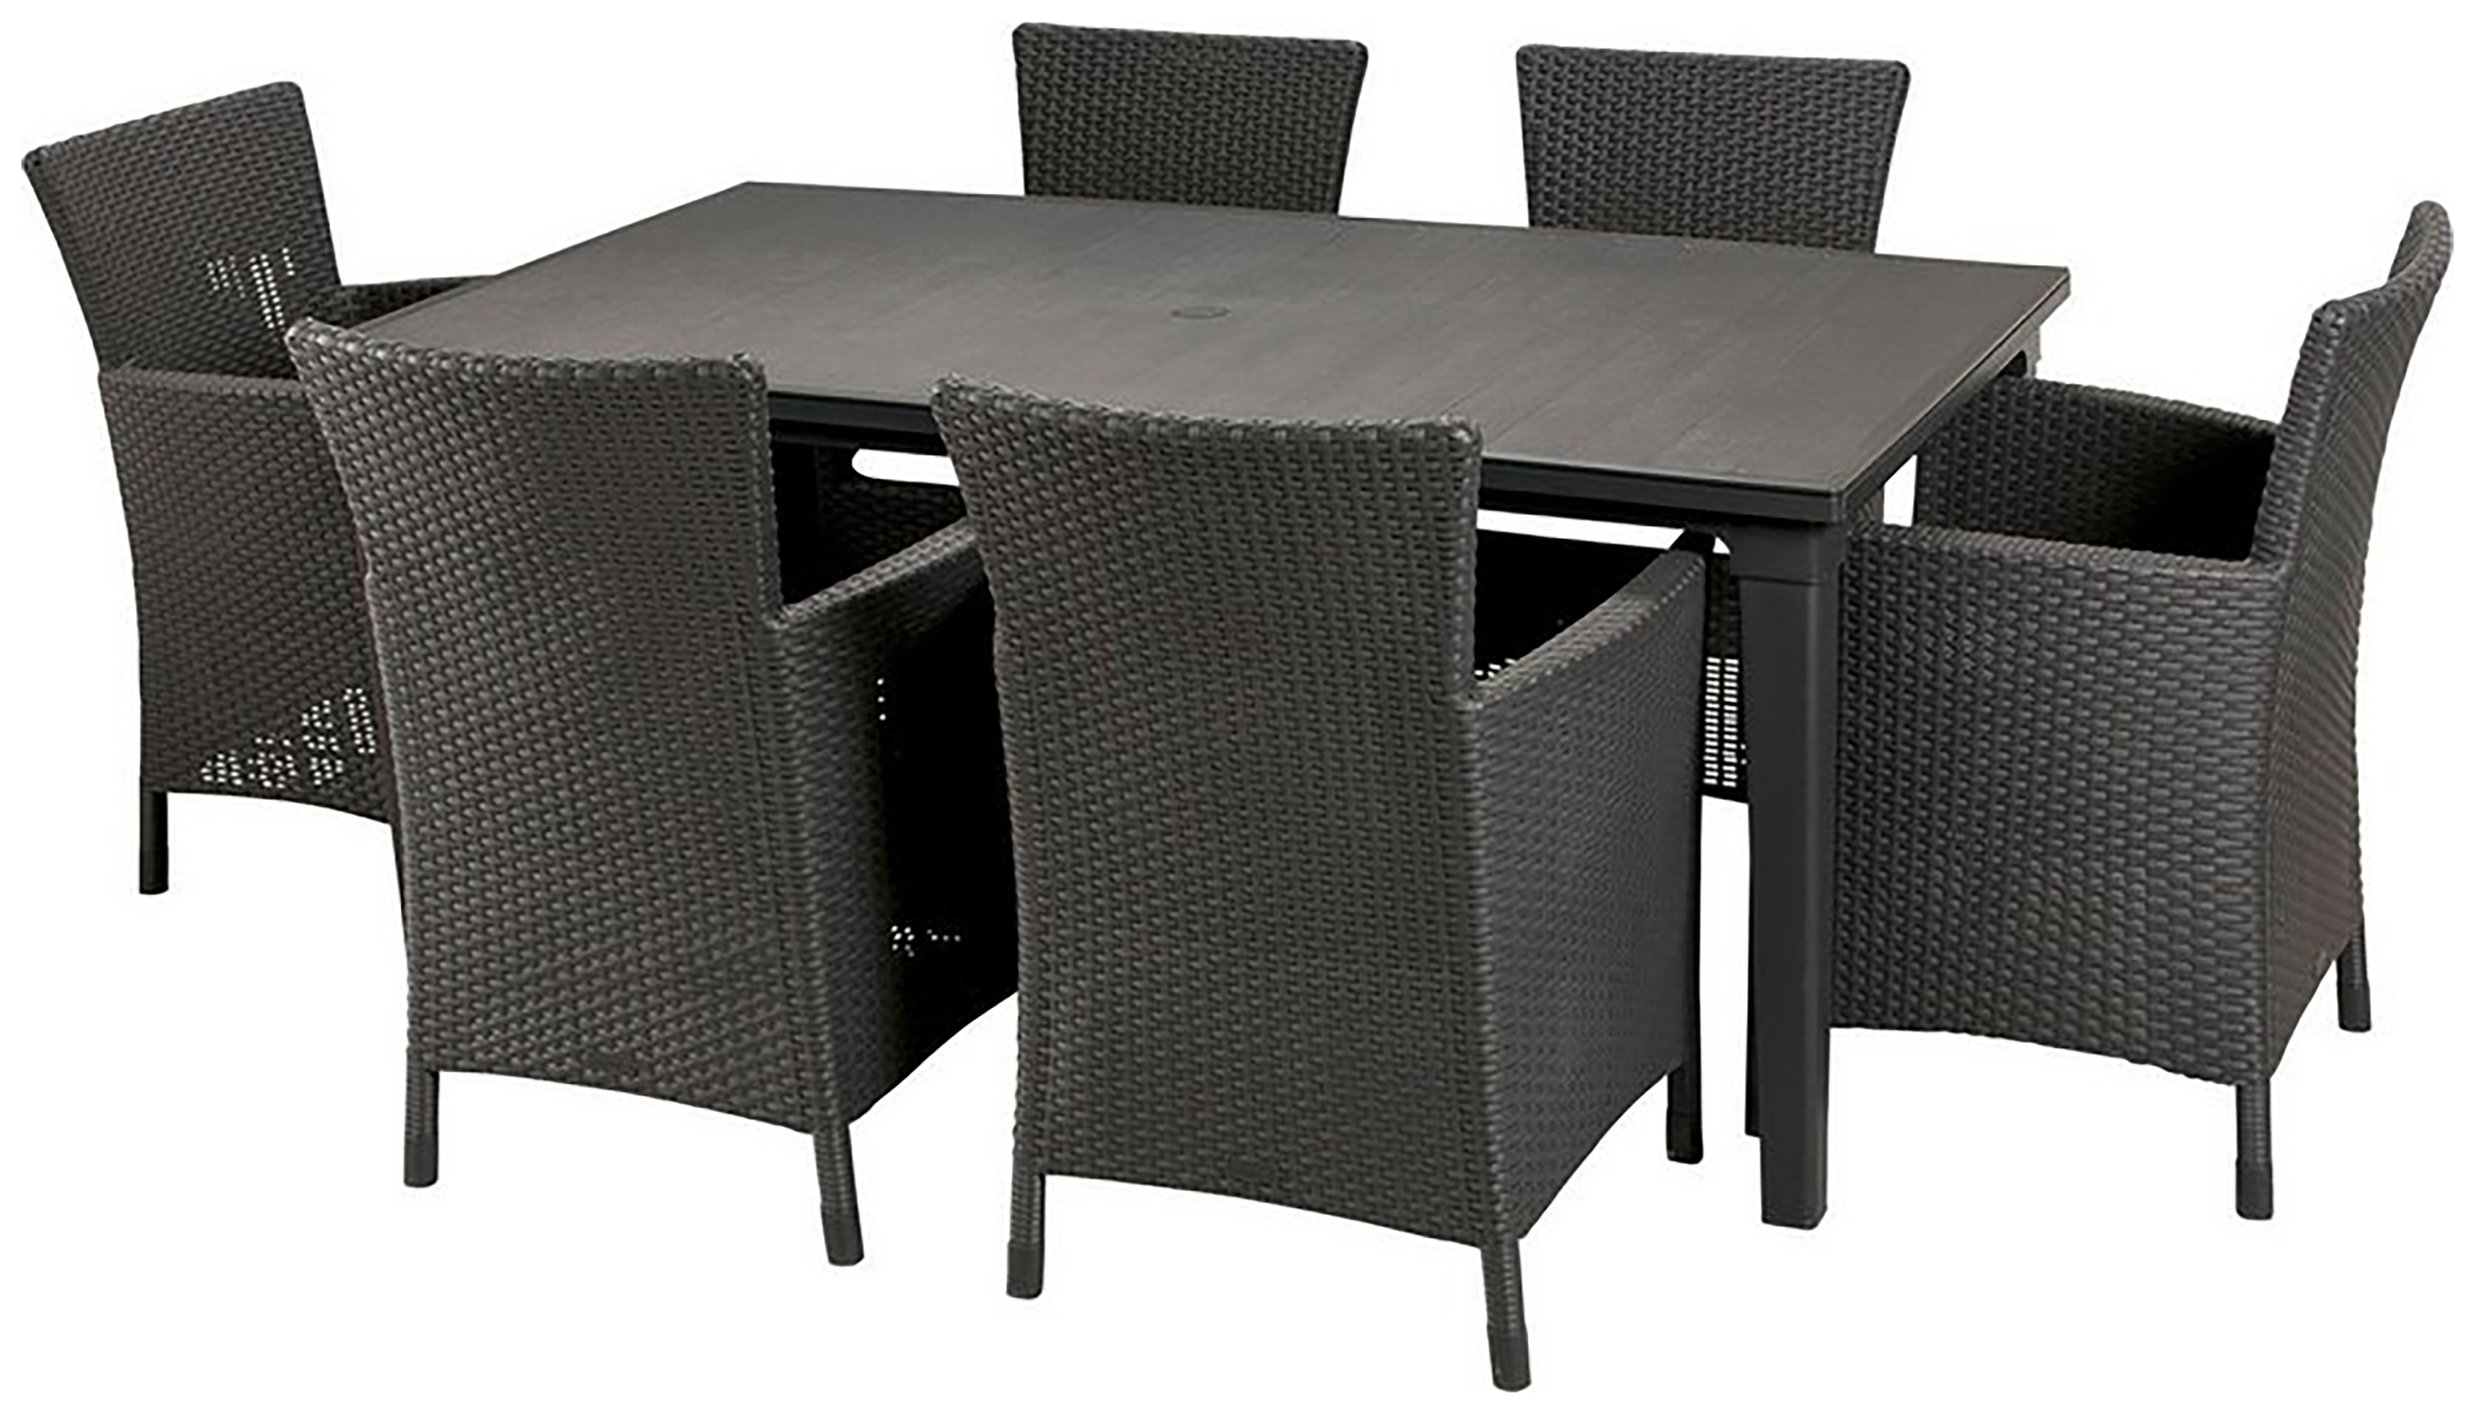 Garden Furniture 6 Seater buy keter iowa rattan 6 seater garden dining set - graphite at